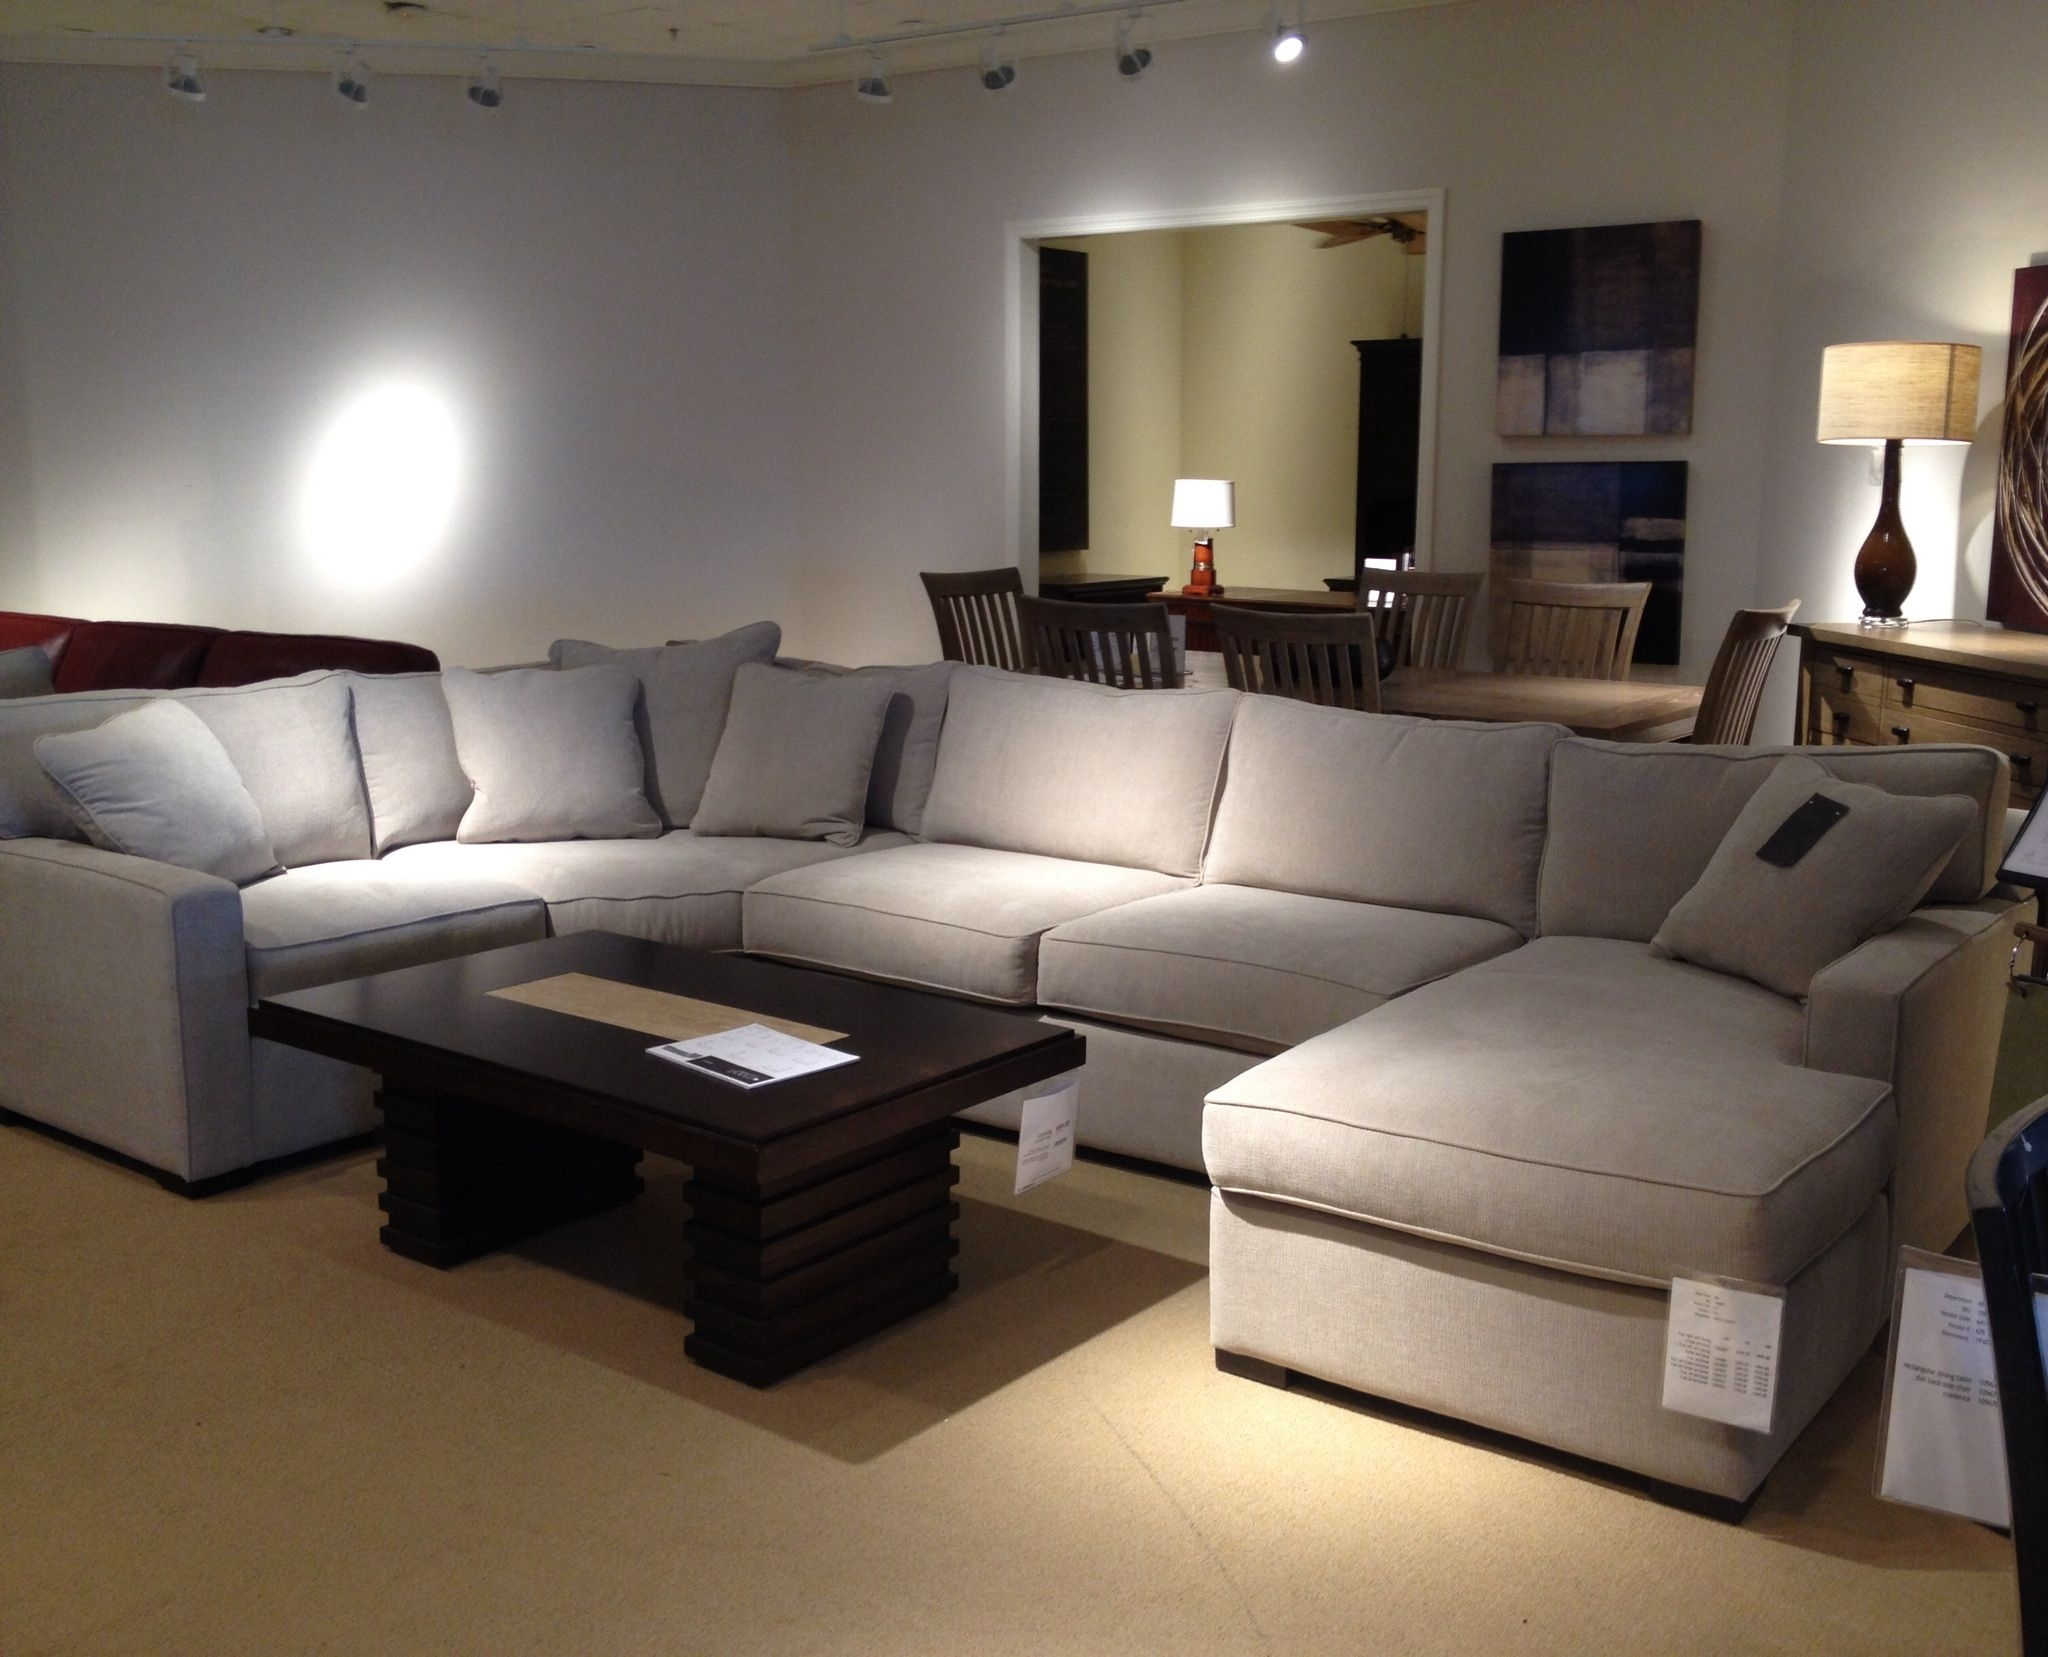 Radley 4 Piece Sectional Sofa From Macys. What's Great Is We Can in Aidan 4 Piece Sectionals (Image 24 of 30)